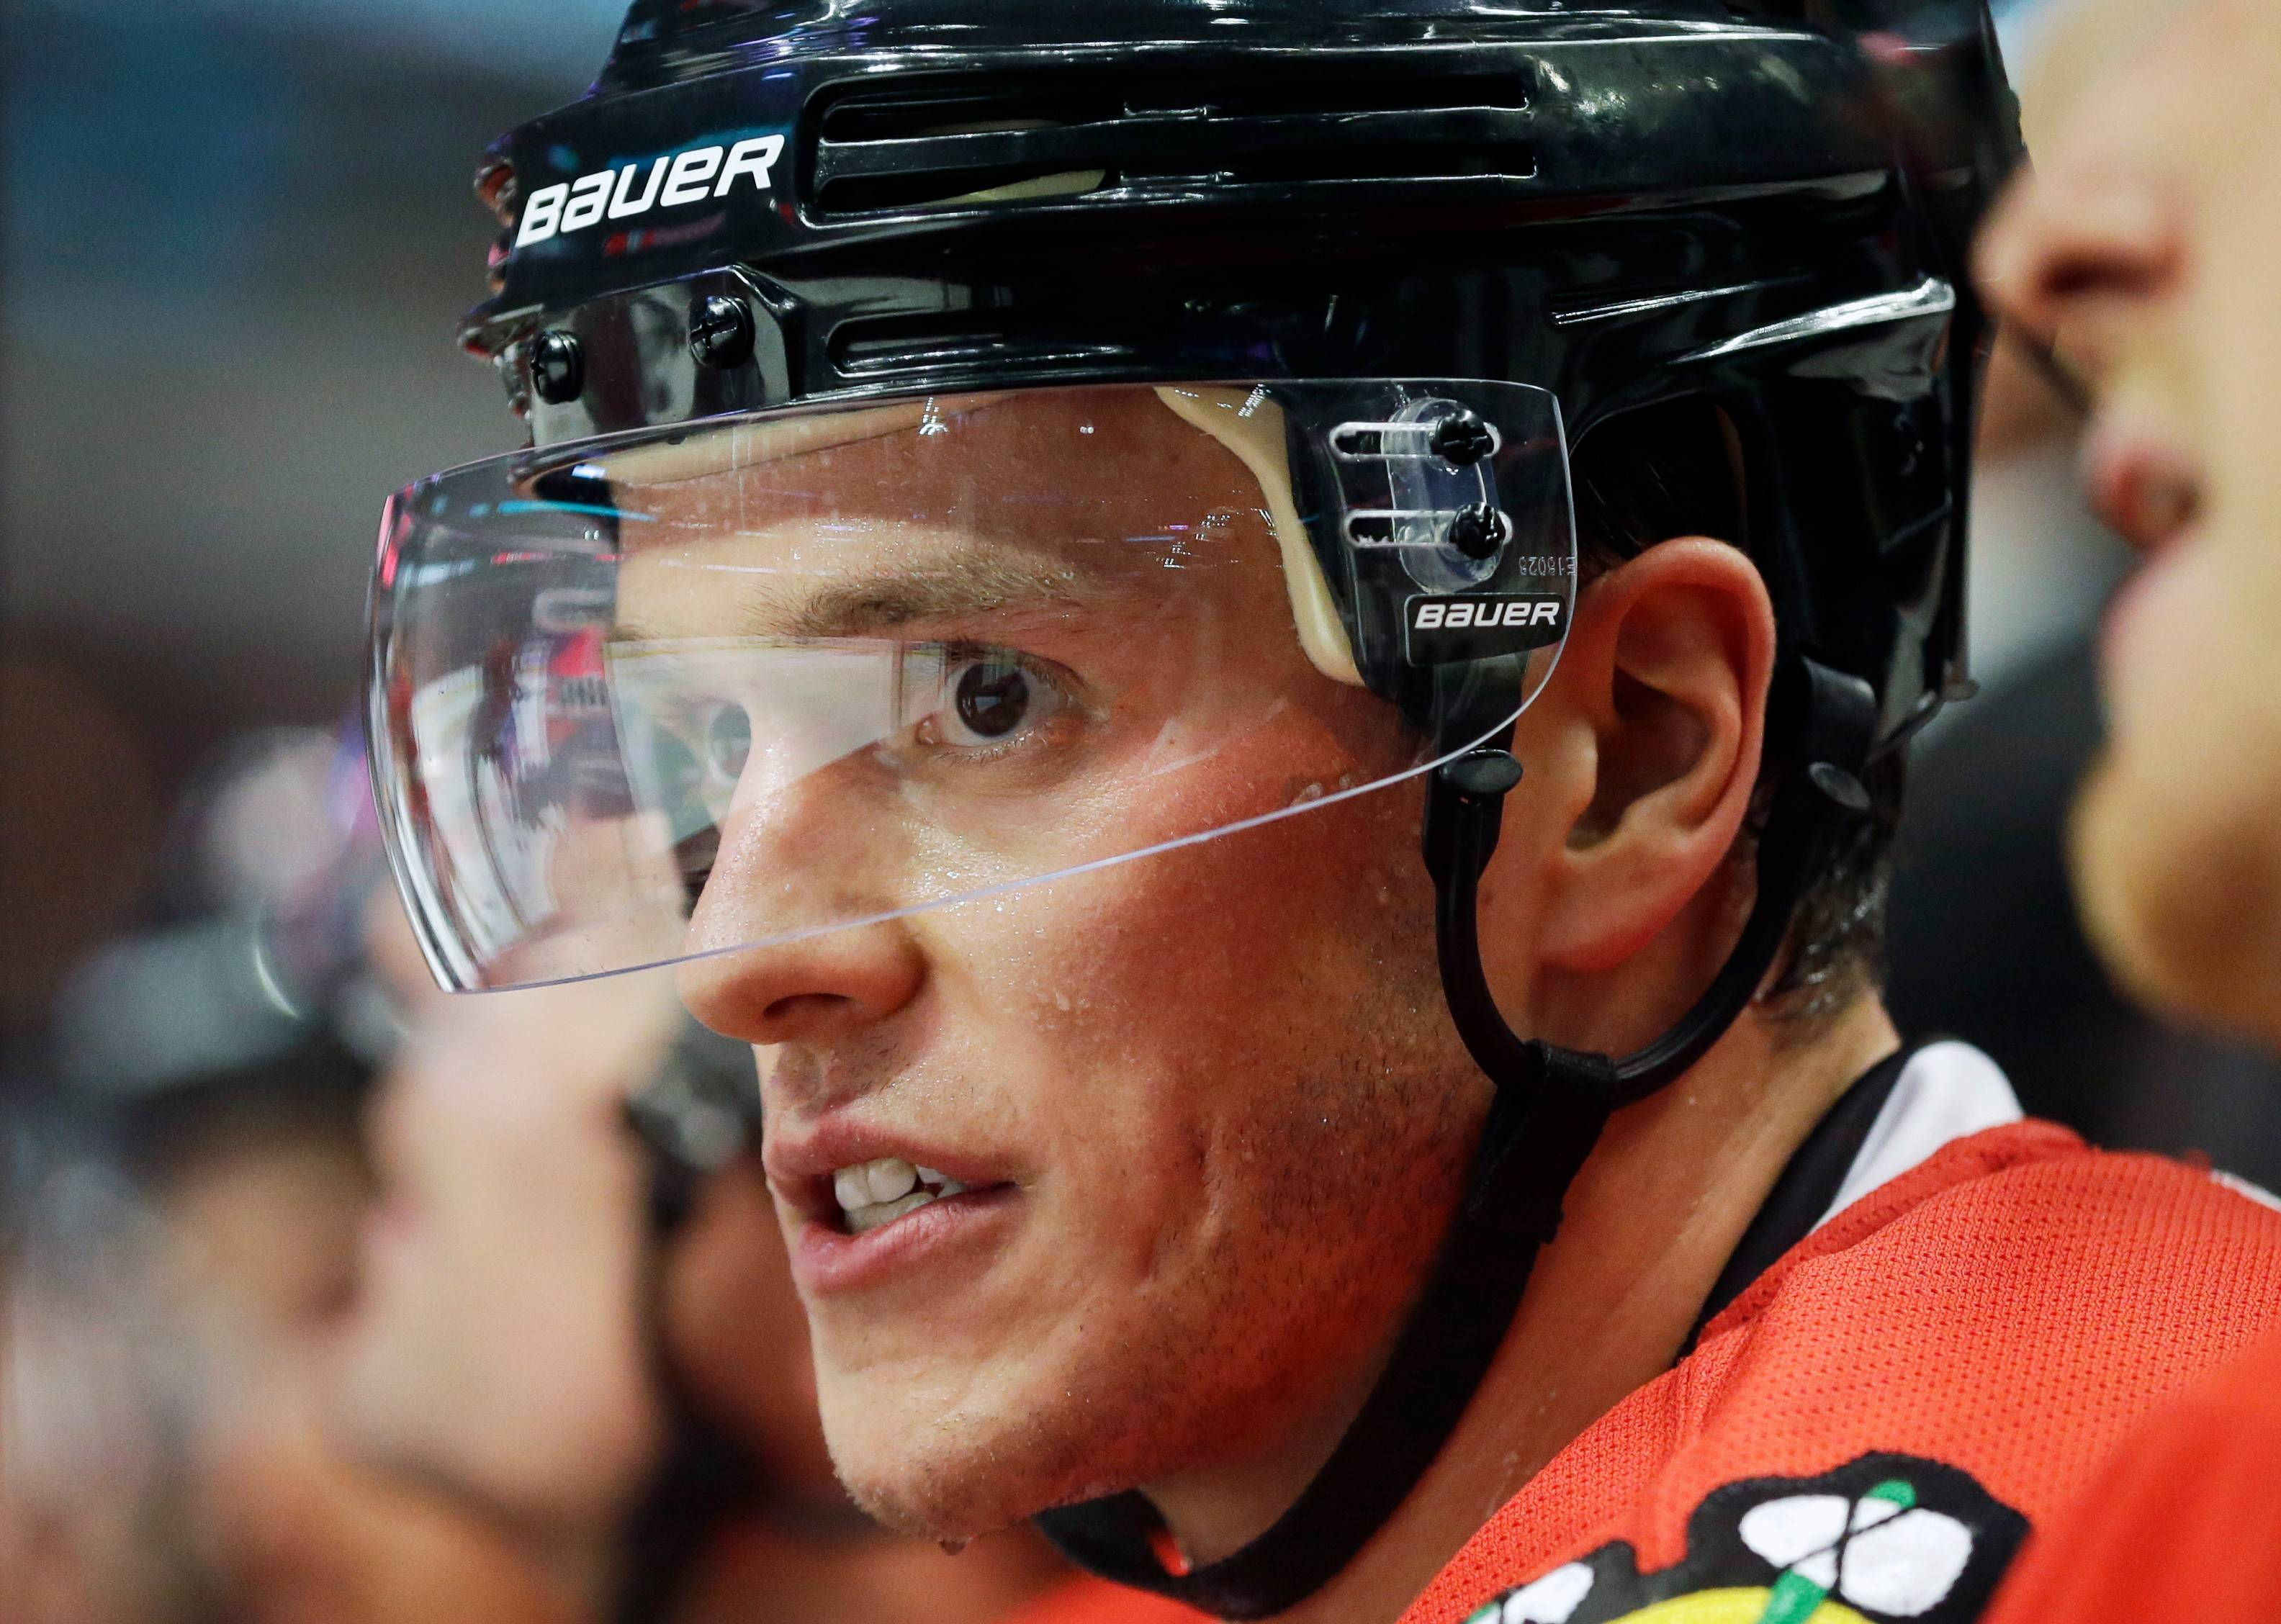 Chicago Blackhawks captain Jonathan Toews is a finalist for the Mark Messier Leadership Award, which is given by NHL officials to the best leader on and off the ice.